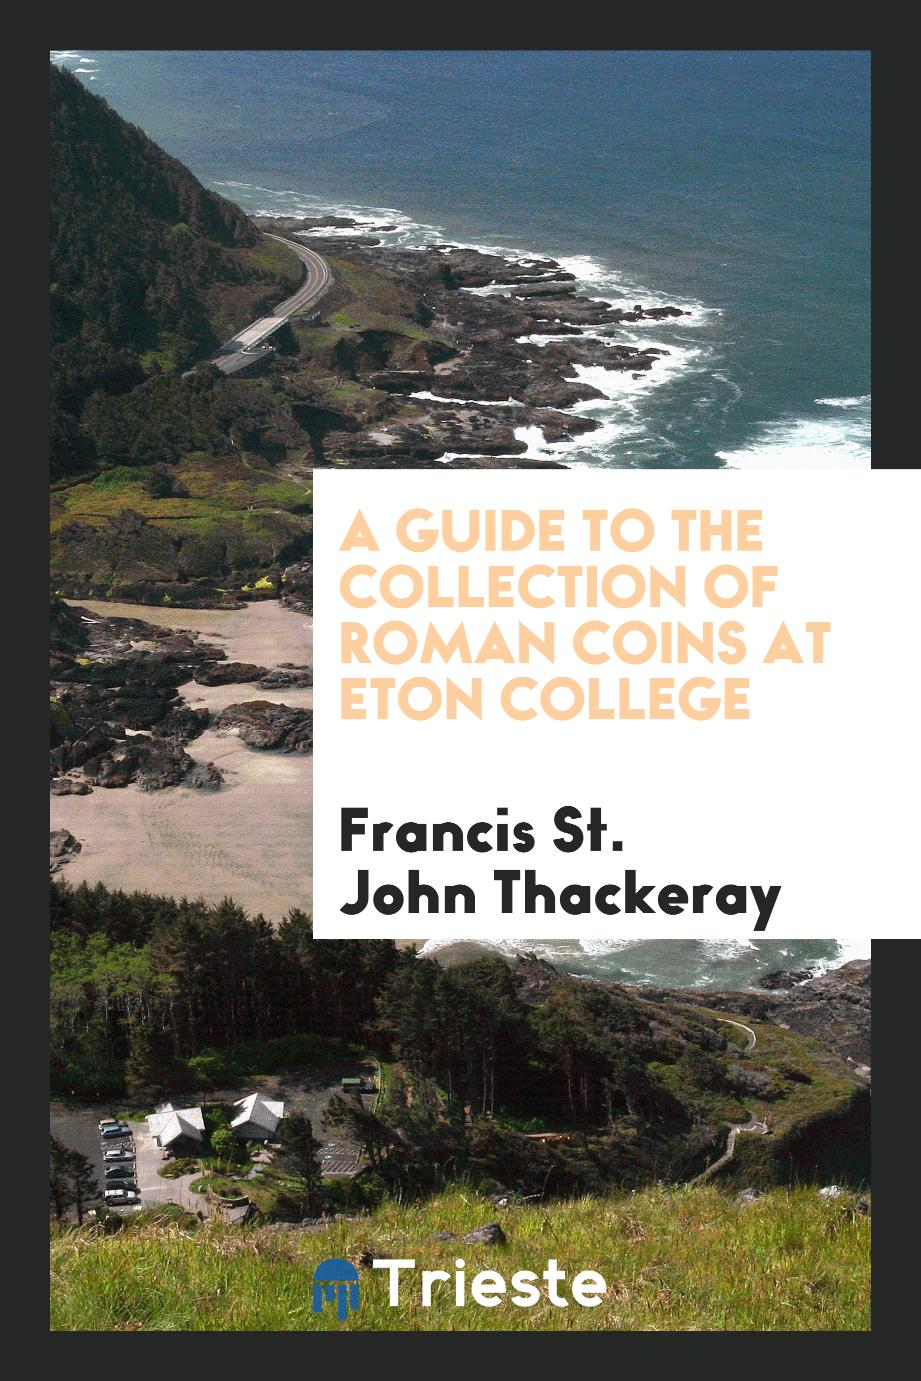 A Guide to the Collection of Roman Coins at Eton College